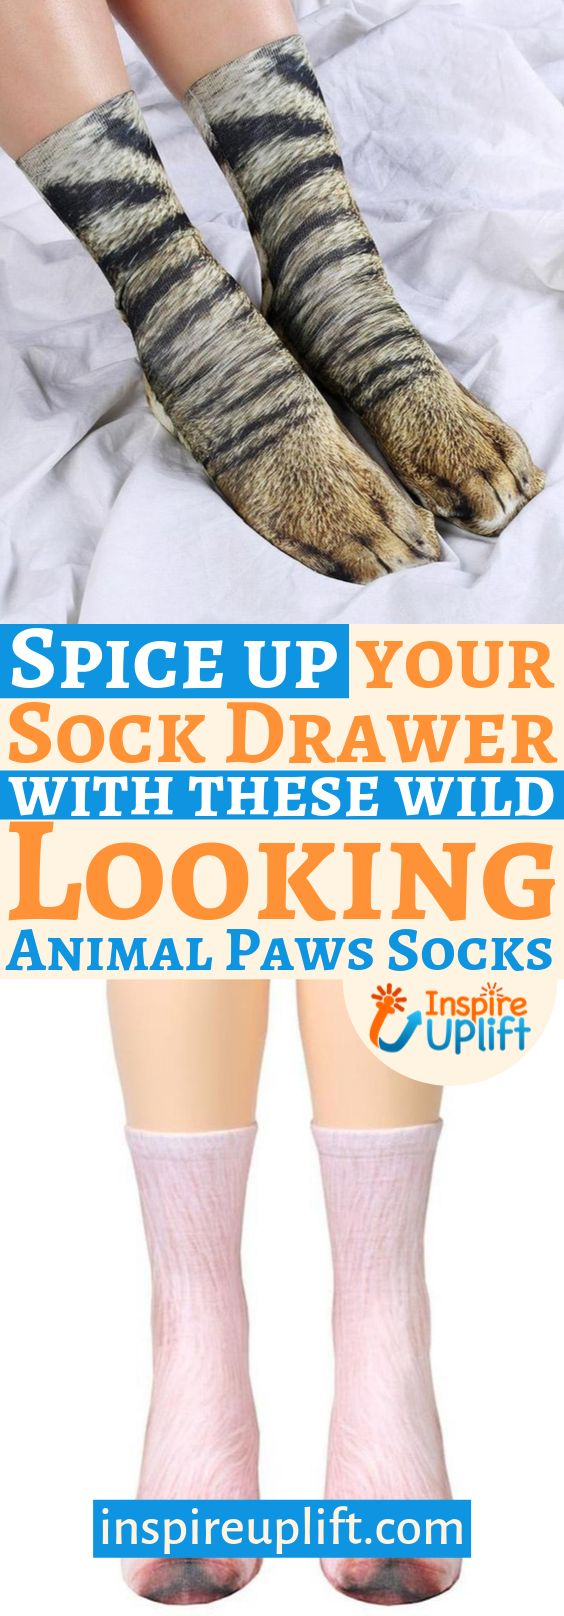 Have you ever dreamed of taking a walk on the wild side? Well, now you can, thanks to these funky, Animal Paws Socks! Turn your feet into animal paws and you'll be walking on the wild side in your own home! These adorable, animal print socks are made from 100% polyester and there are a wide variety of designs to choose from.